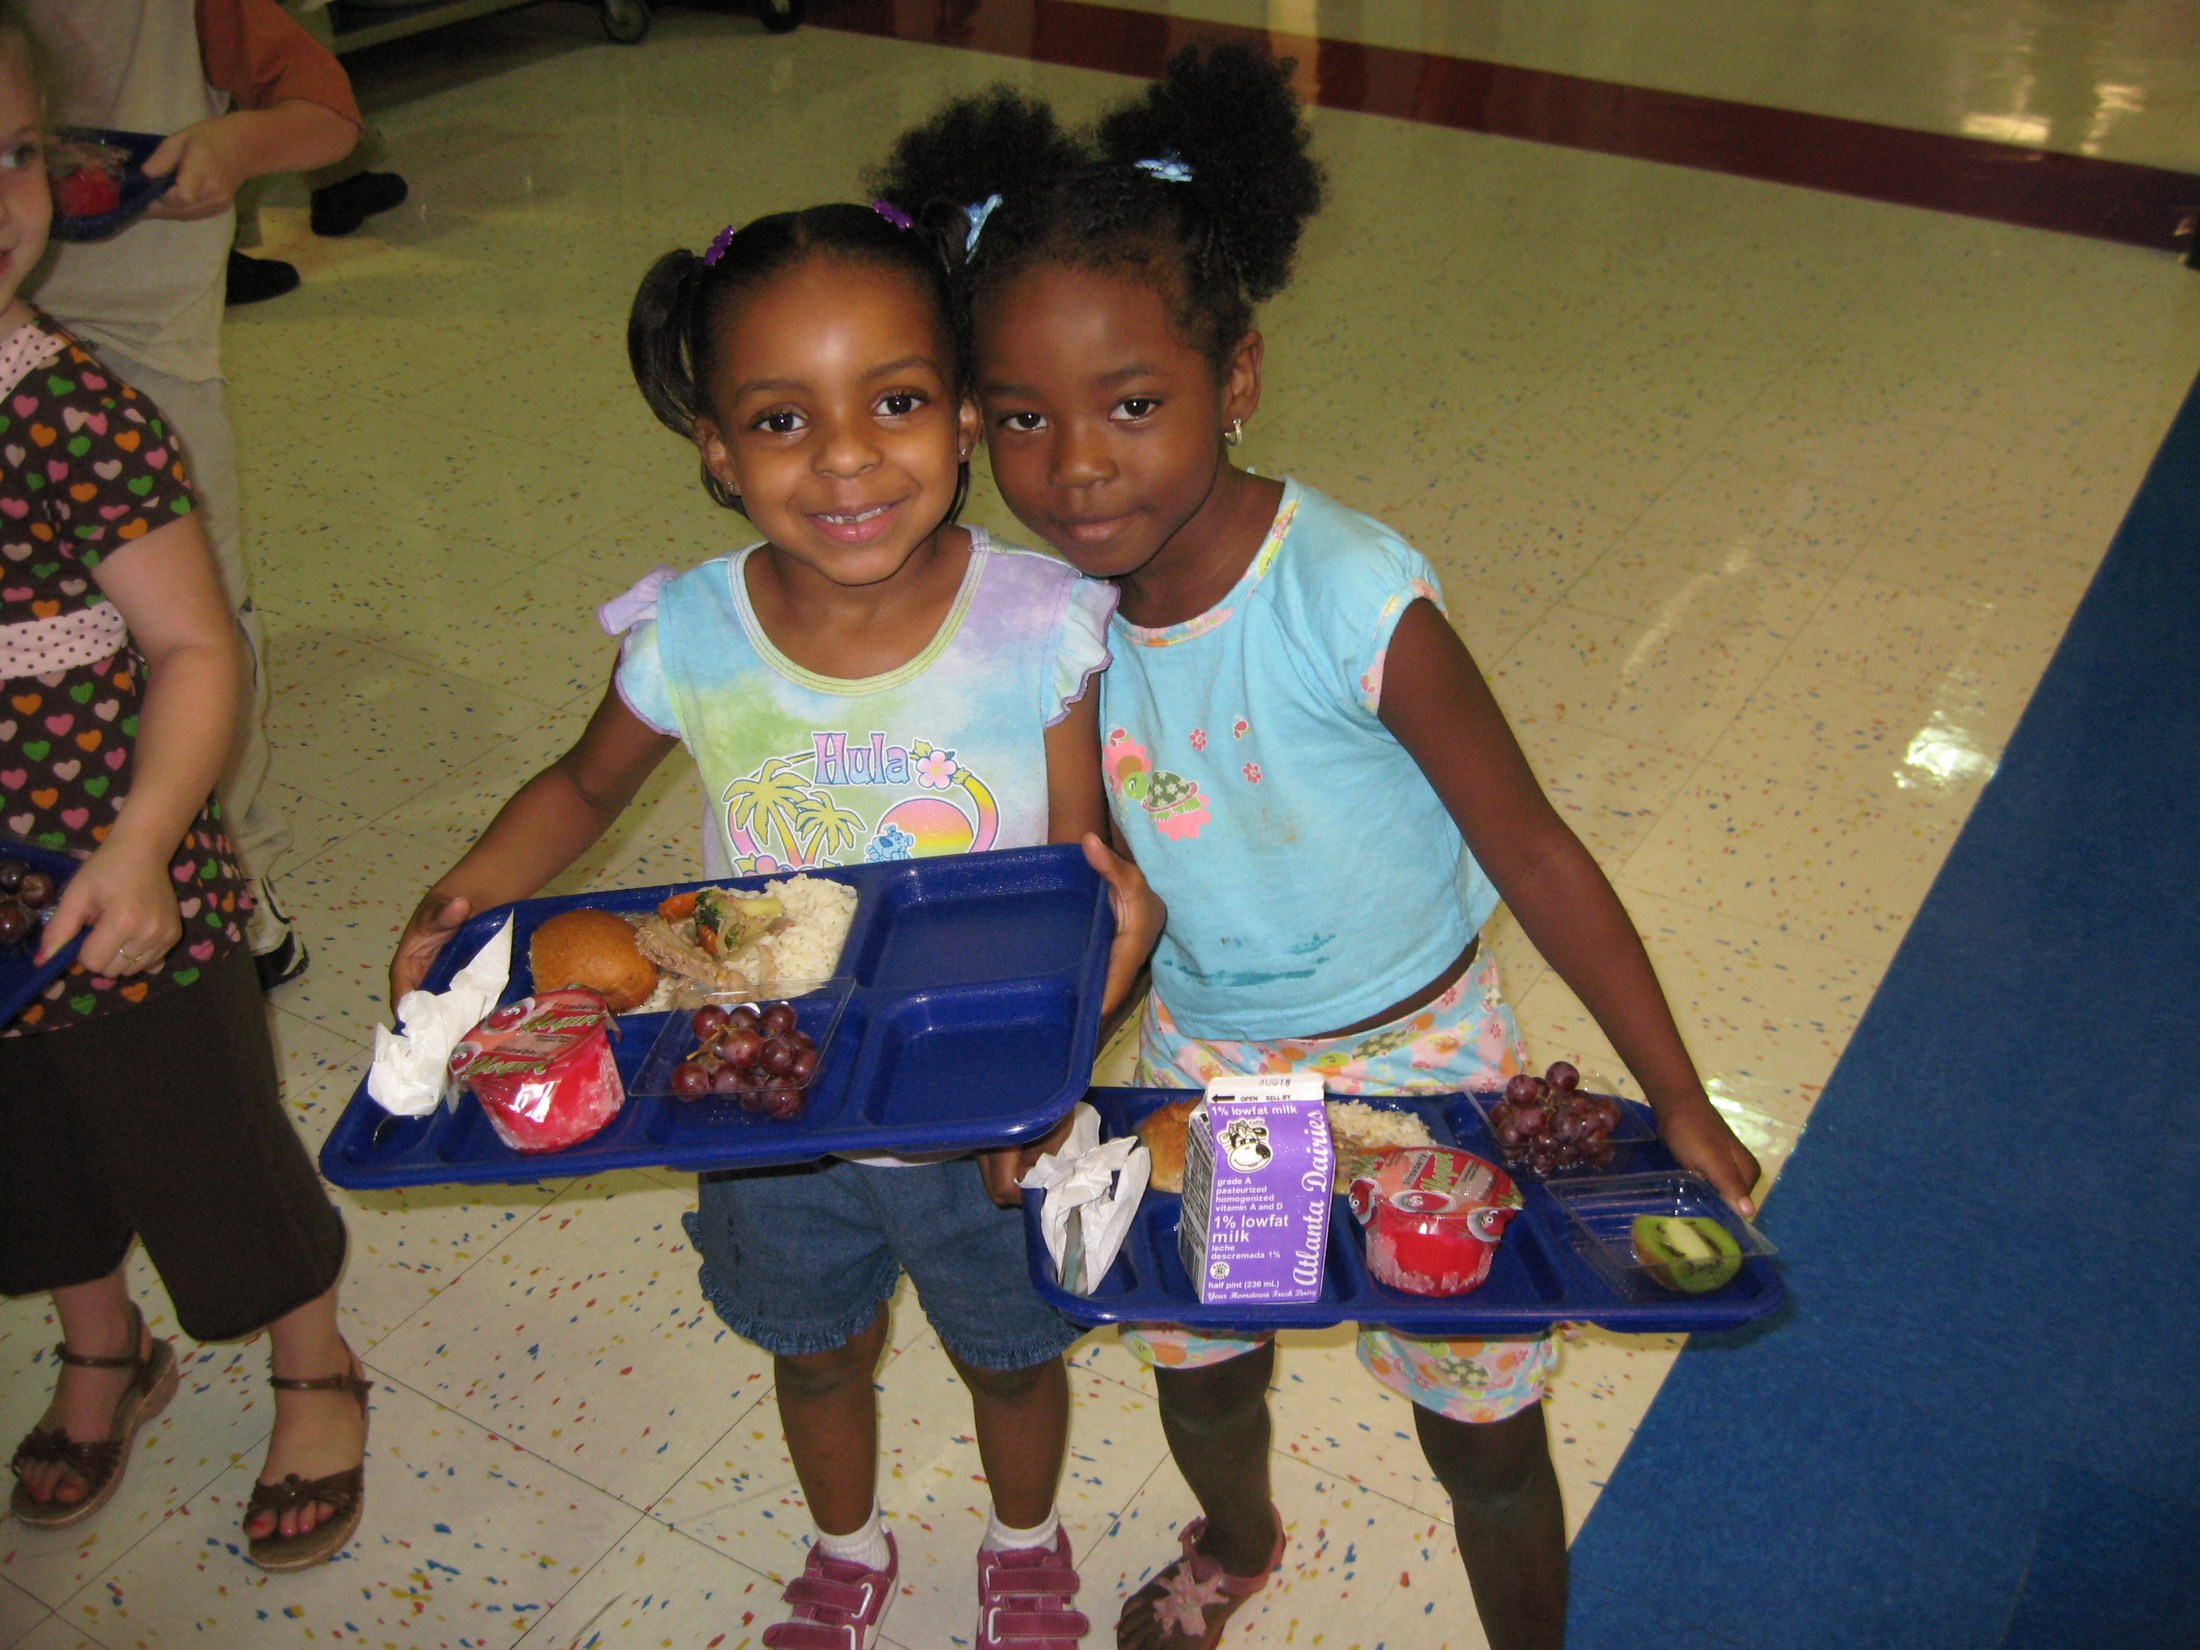 Two little girls holding lunch trays.